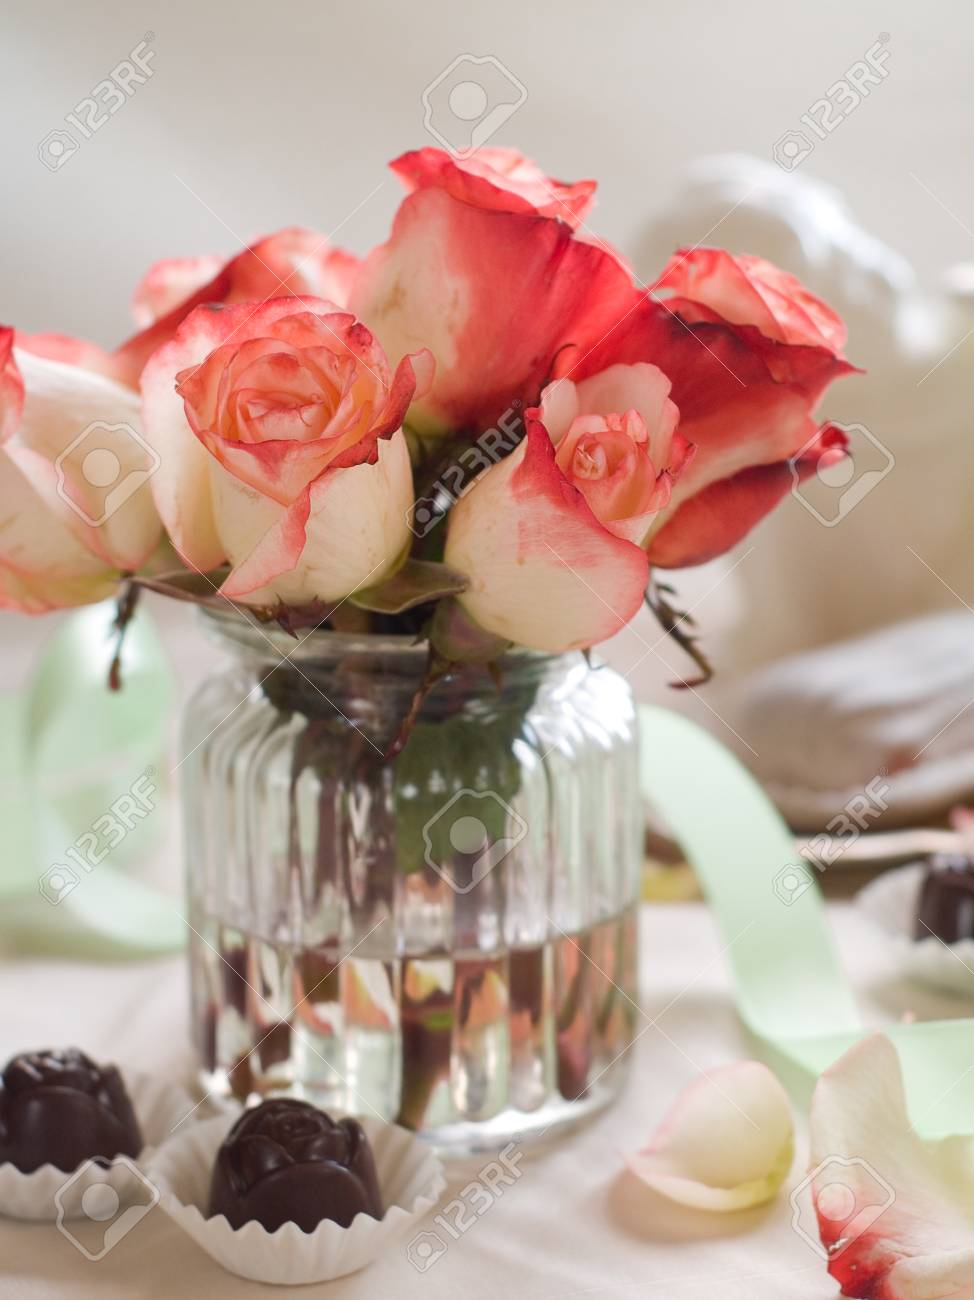 Beautiful Roses In Glass Vase With Chocolate Candy For Celebration